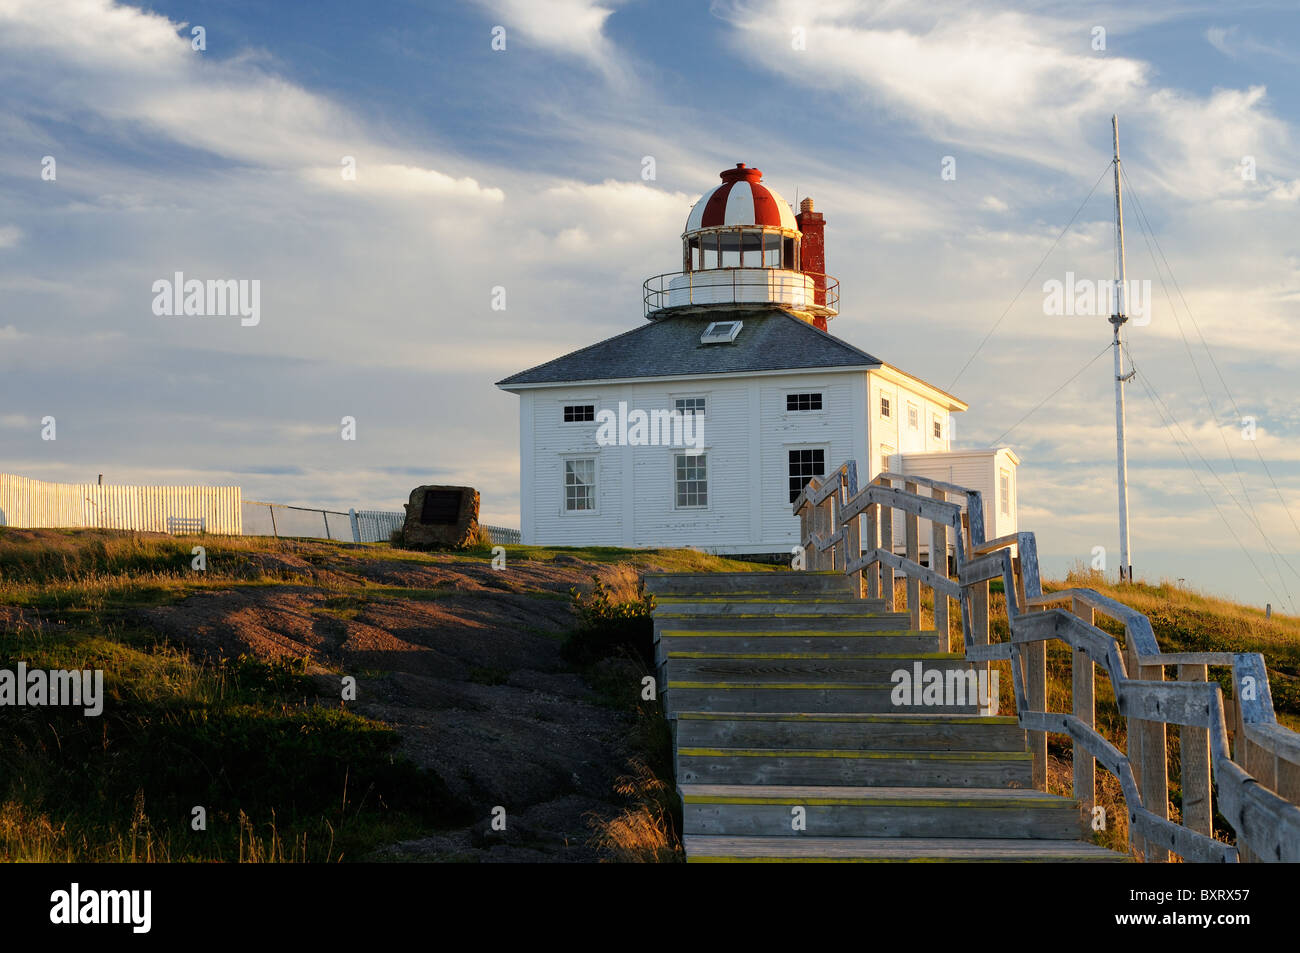 Cape Spear Lighthouse Built In 1836 - Stock Image